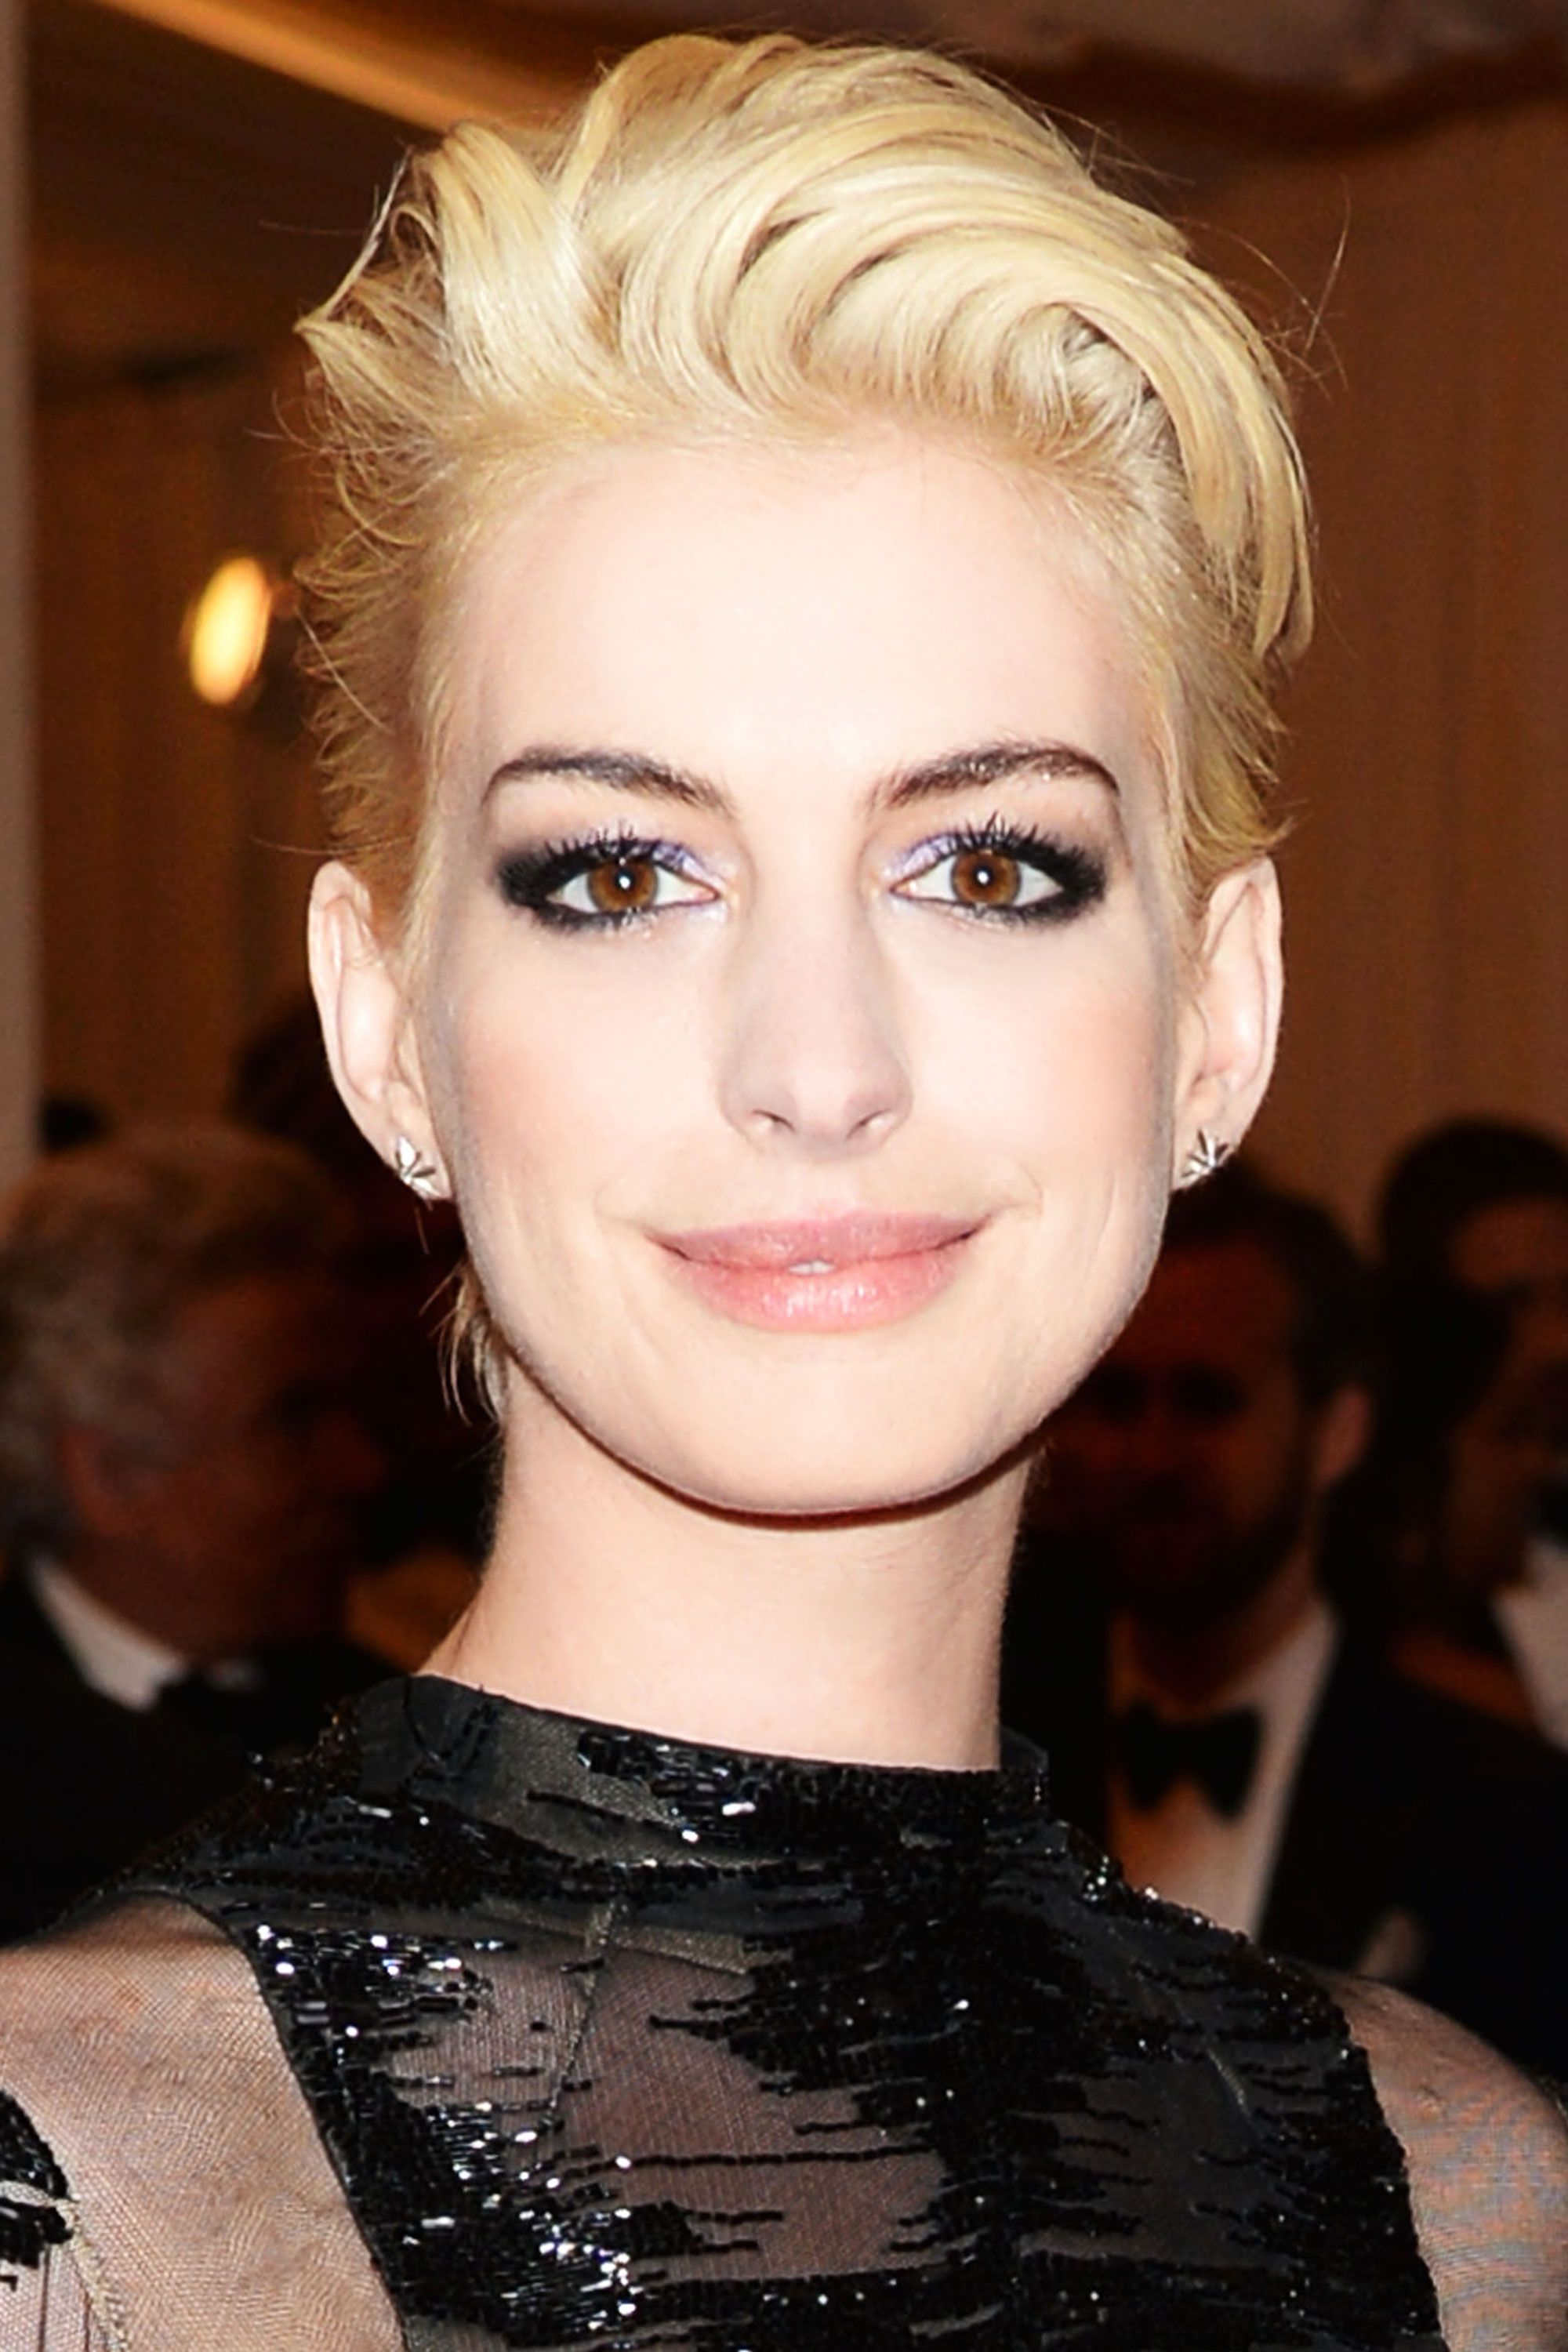 Anne Hathaway Blonde Short Hair At The Met Ball 2017